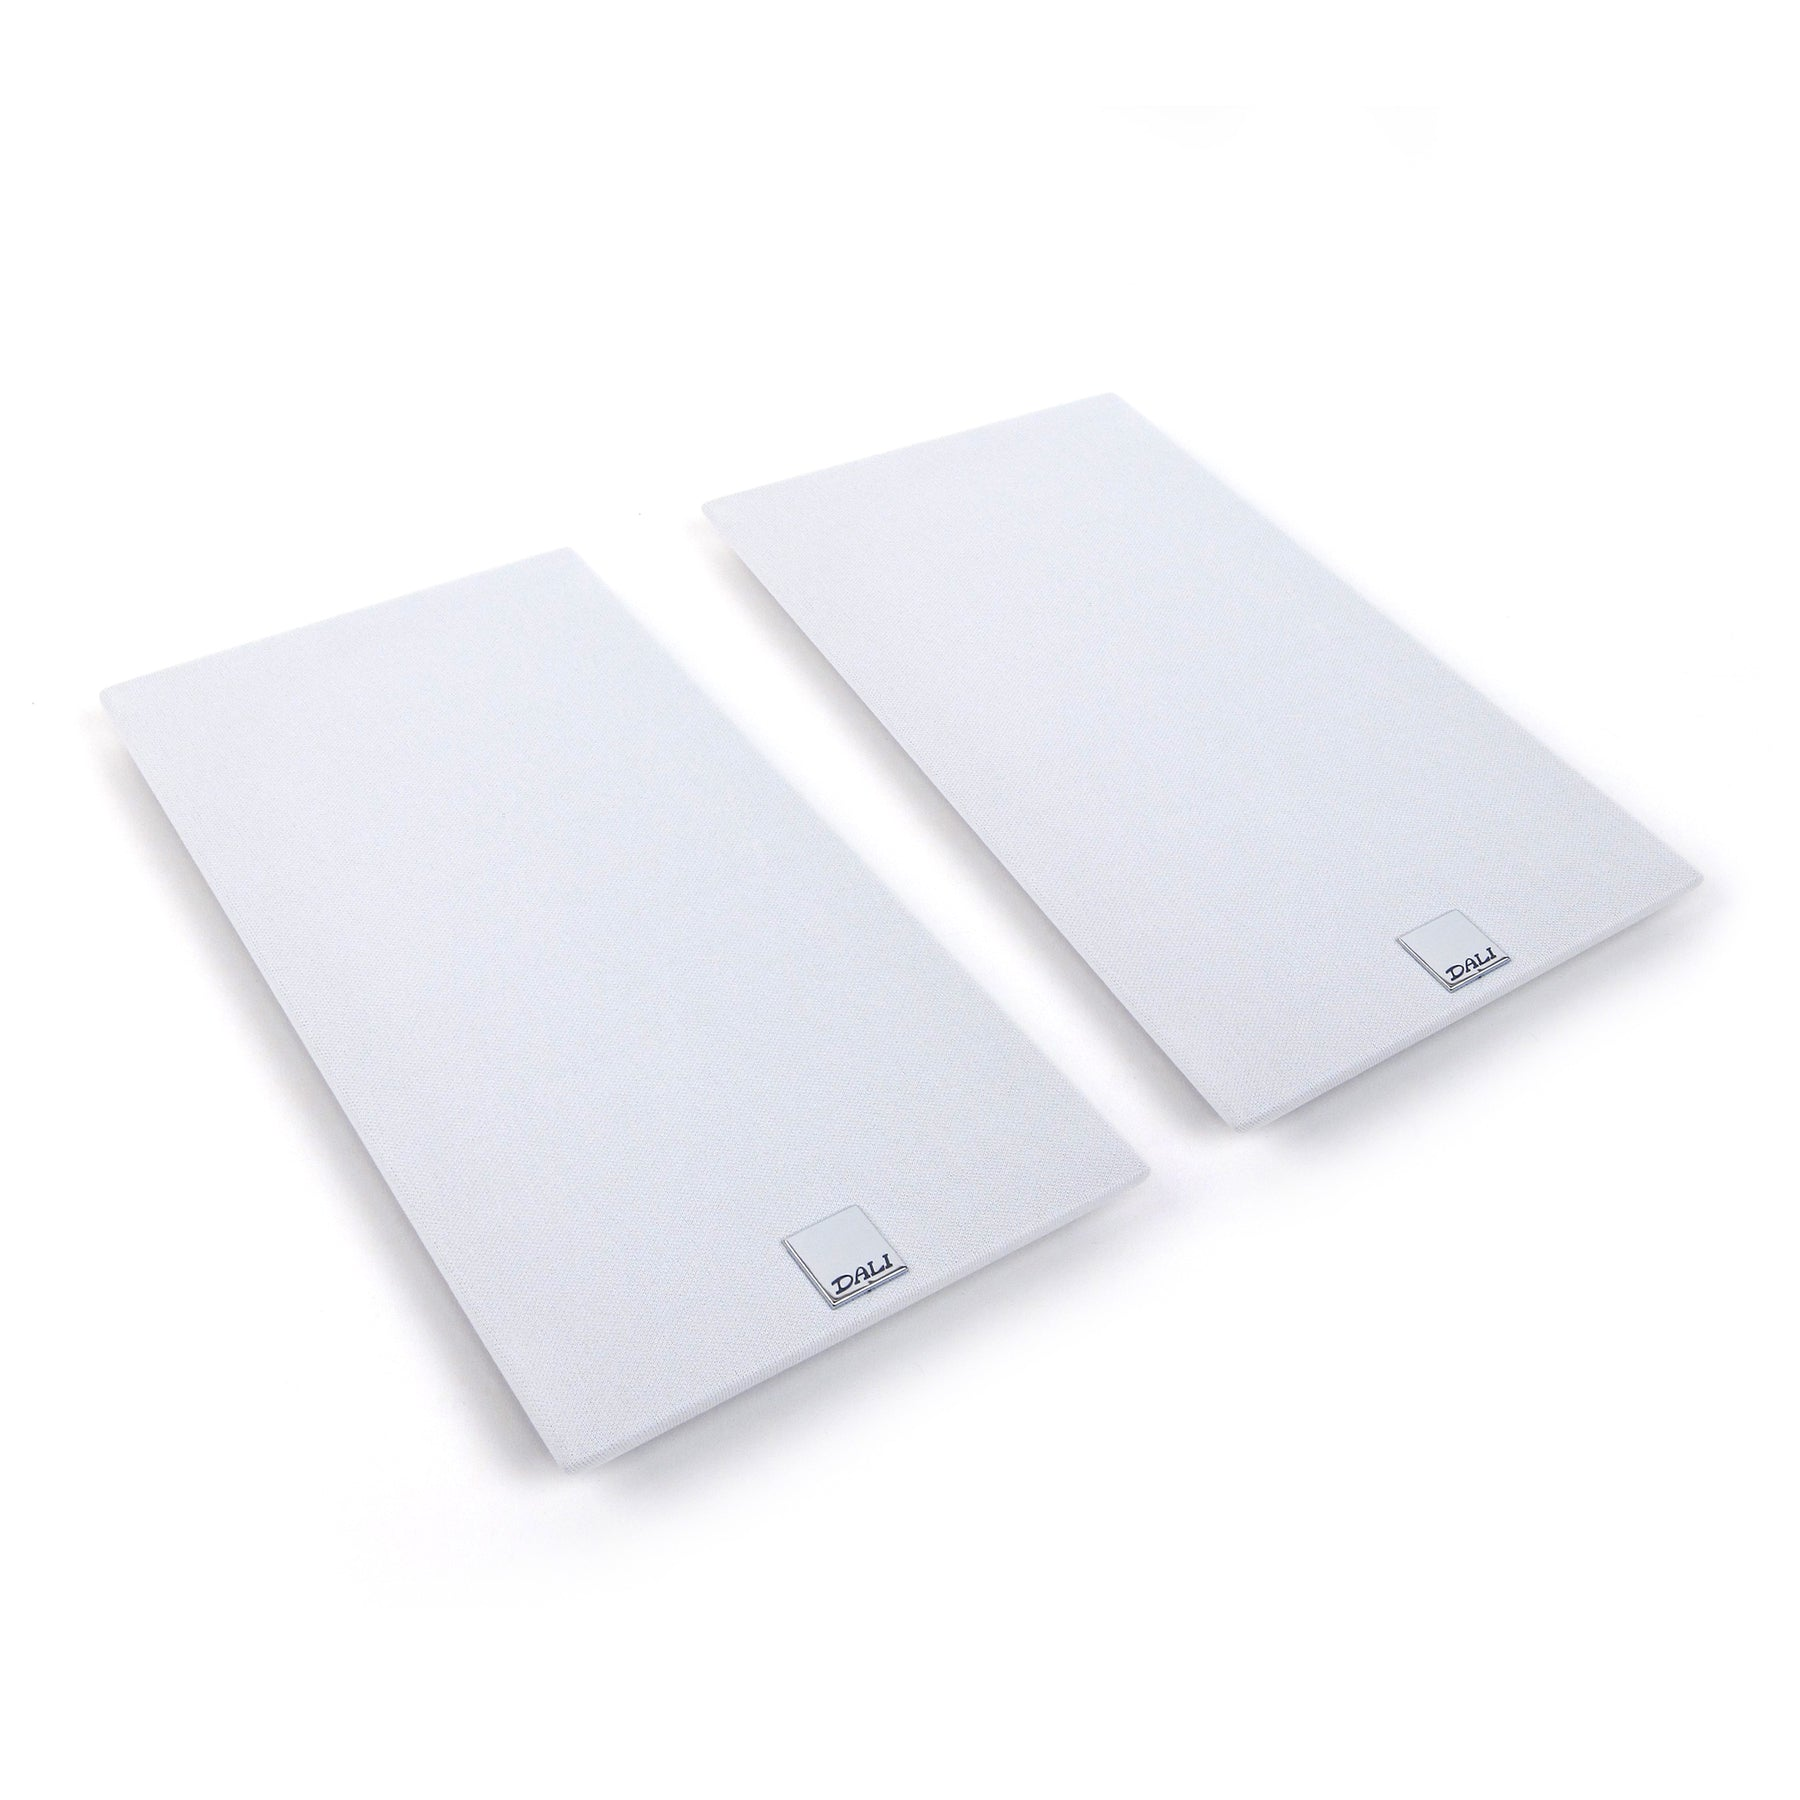 Dali Zensor 3 Replacement Speaker Grills - White / Pair